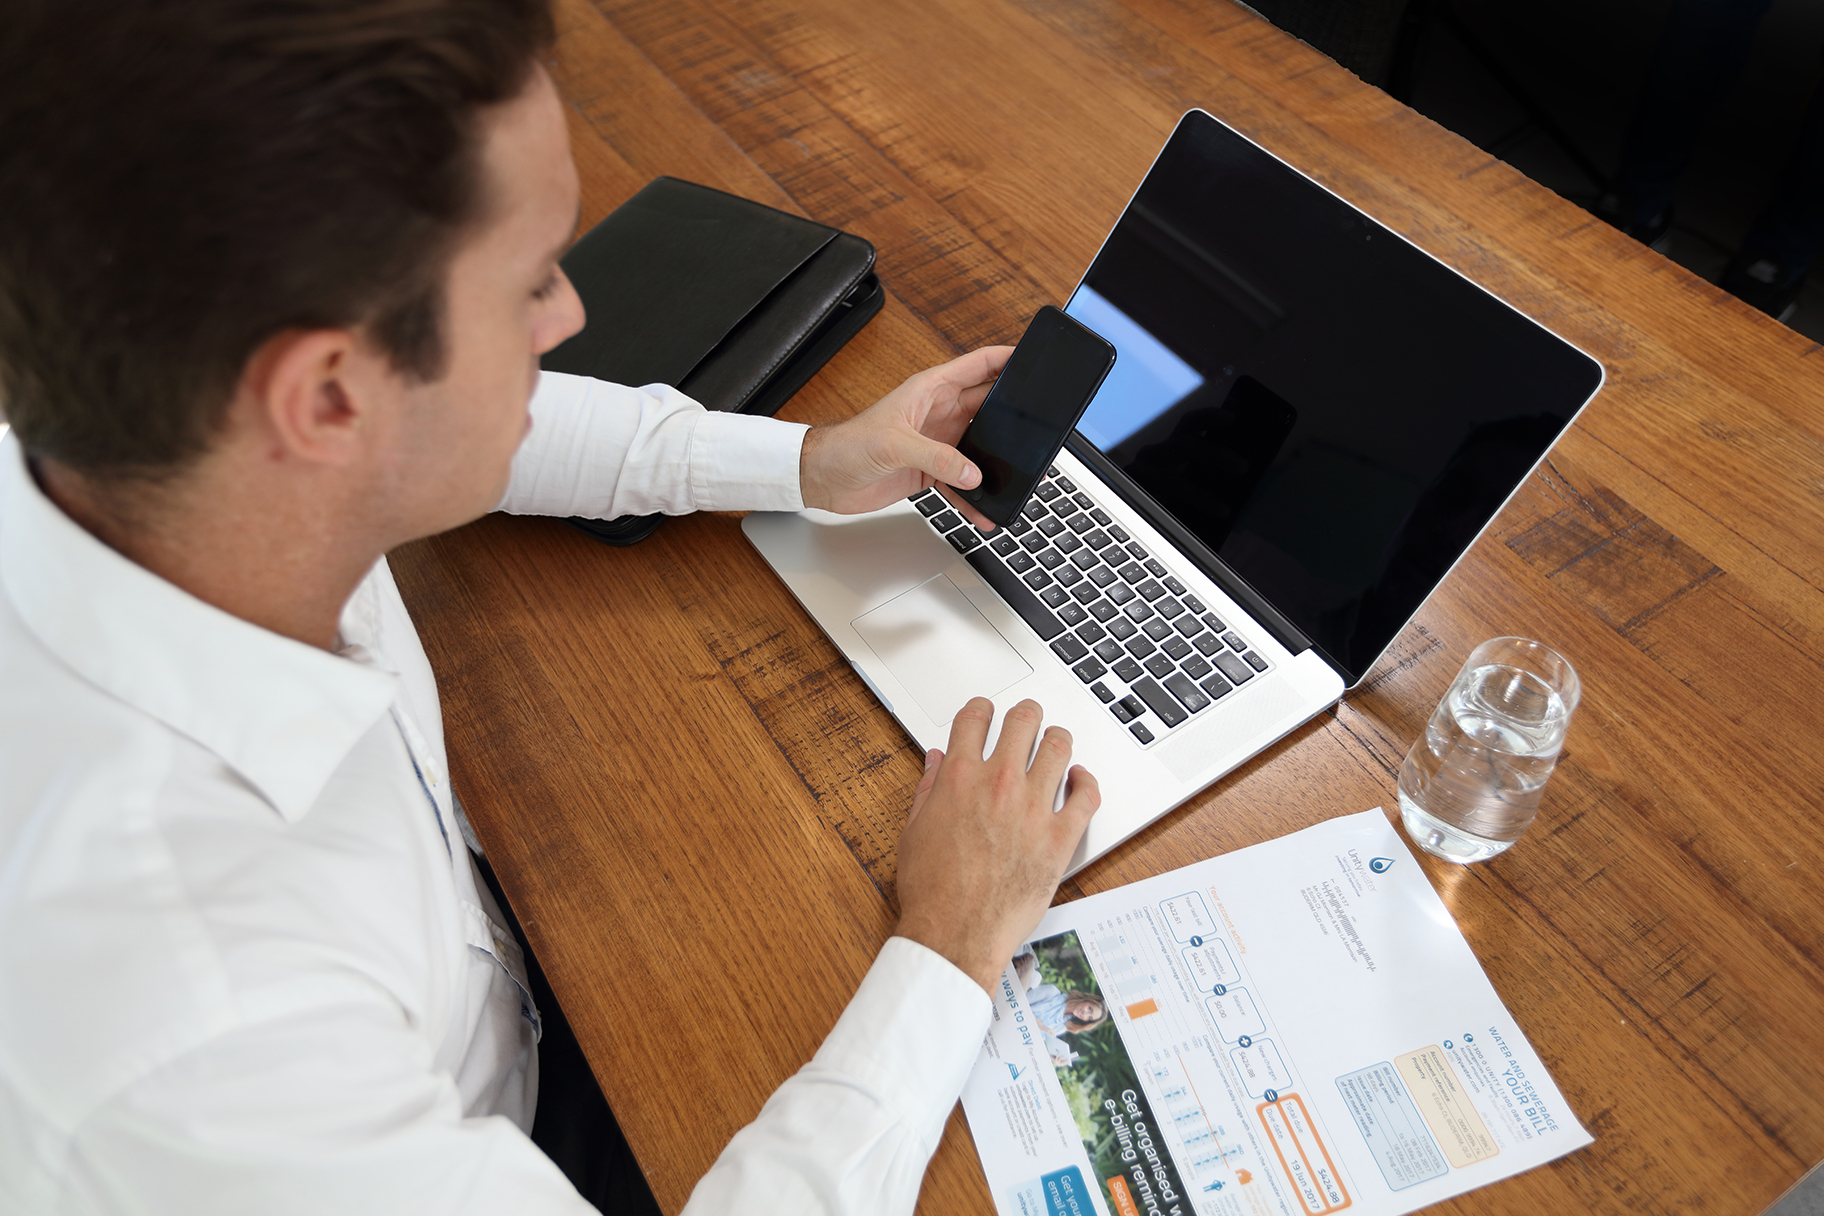 Man looking at mobile phone and laptop computer with Unitywater bill on desk